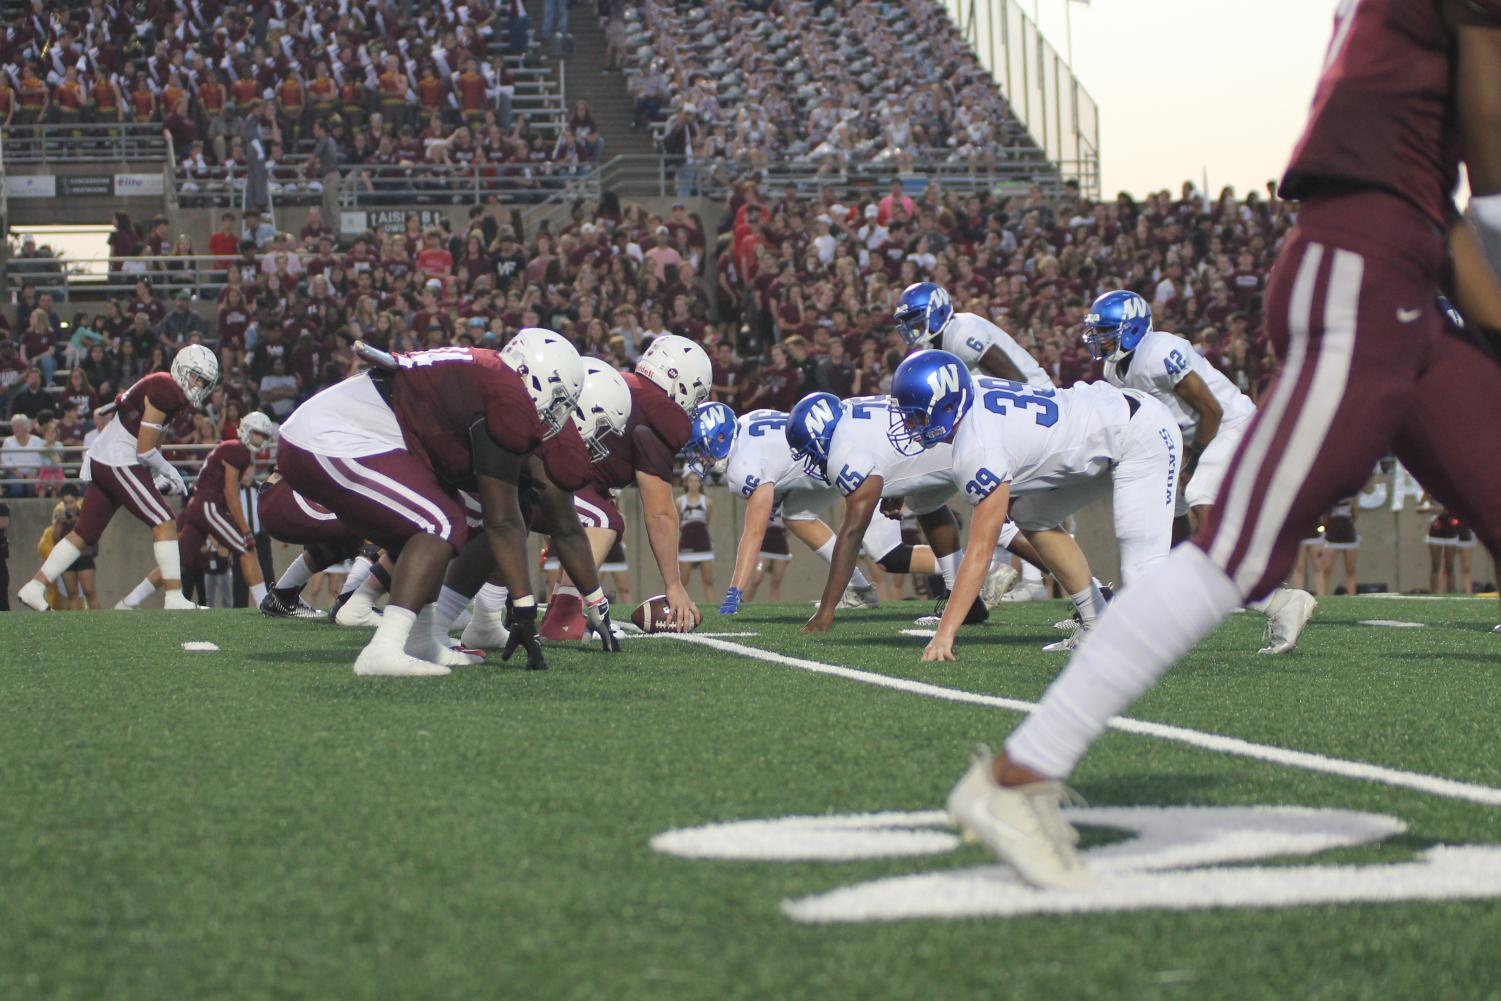 Plano West prepares to stop the Wildcat offense.